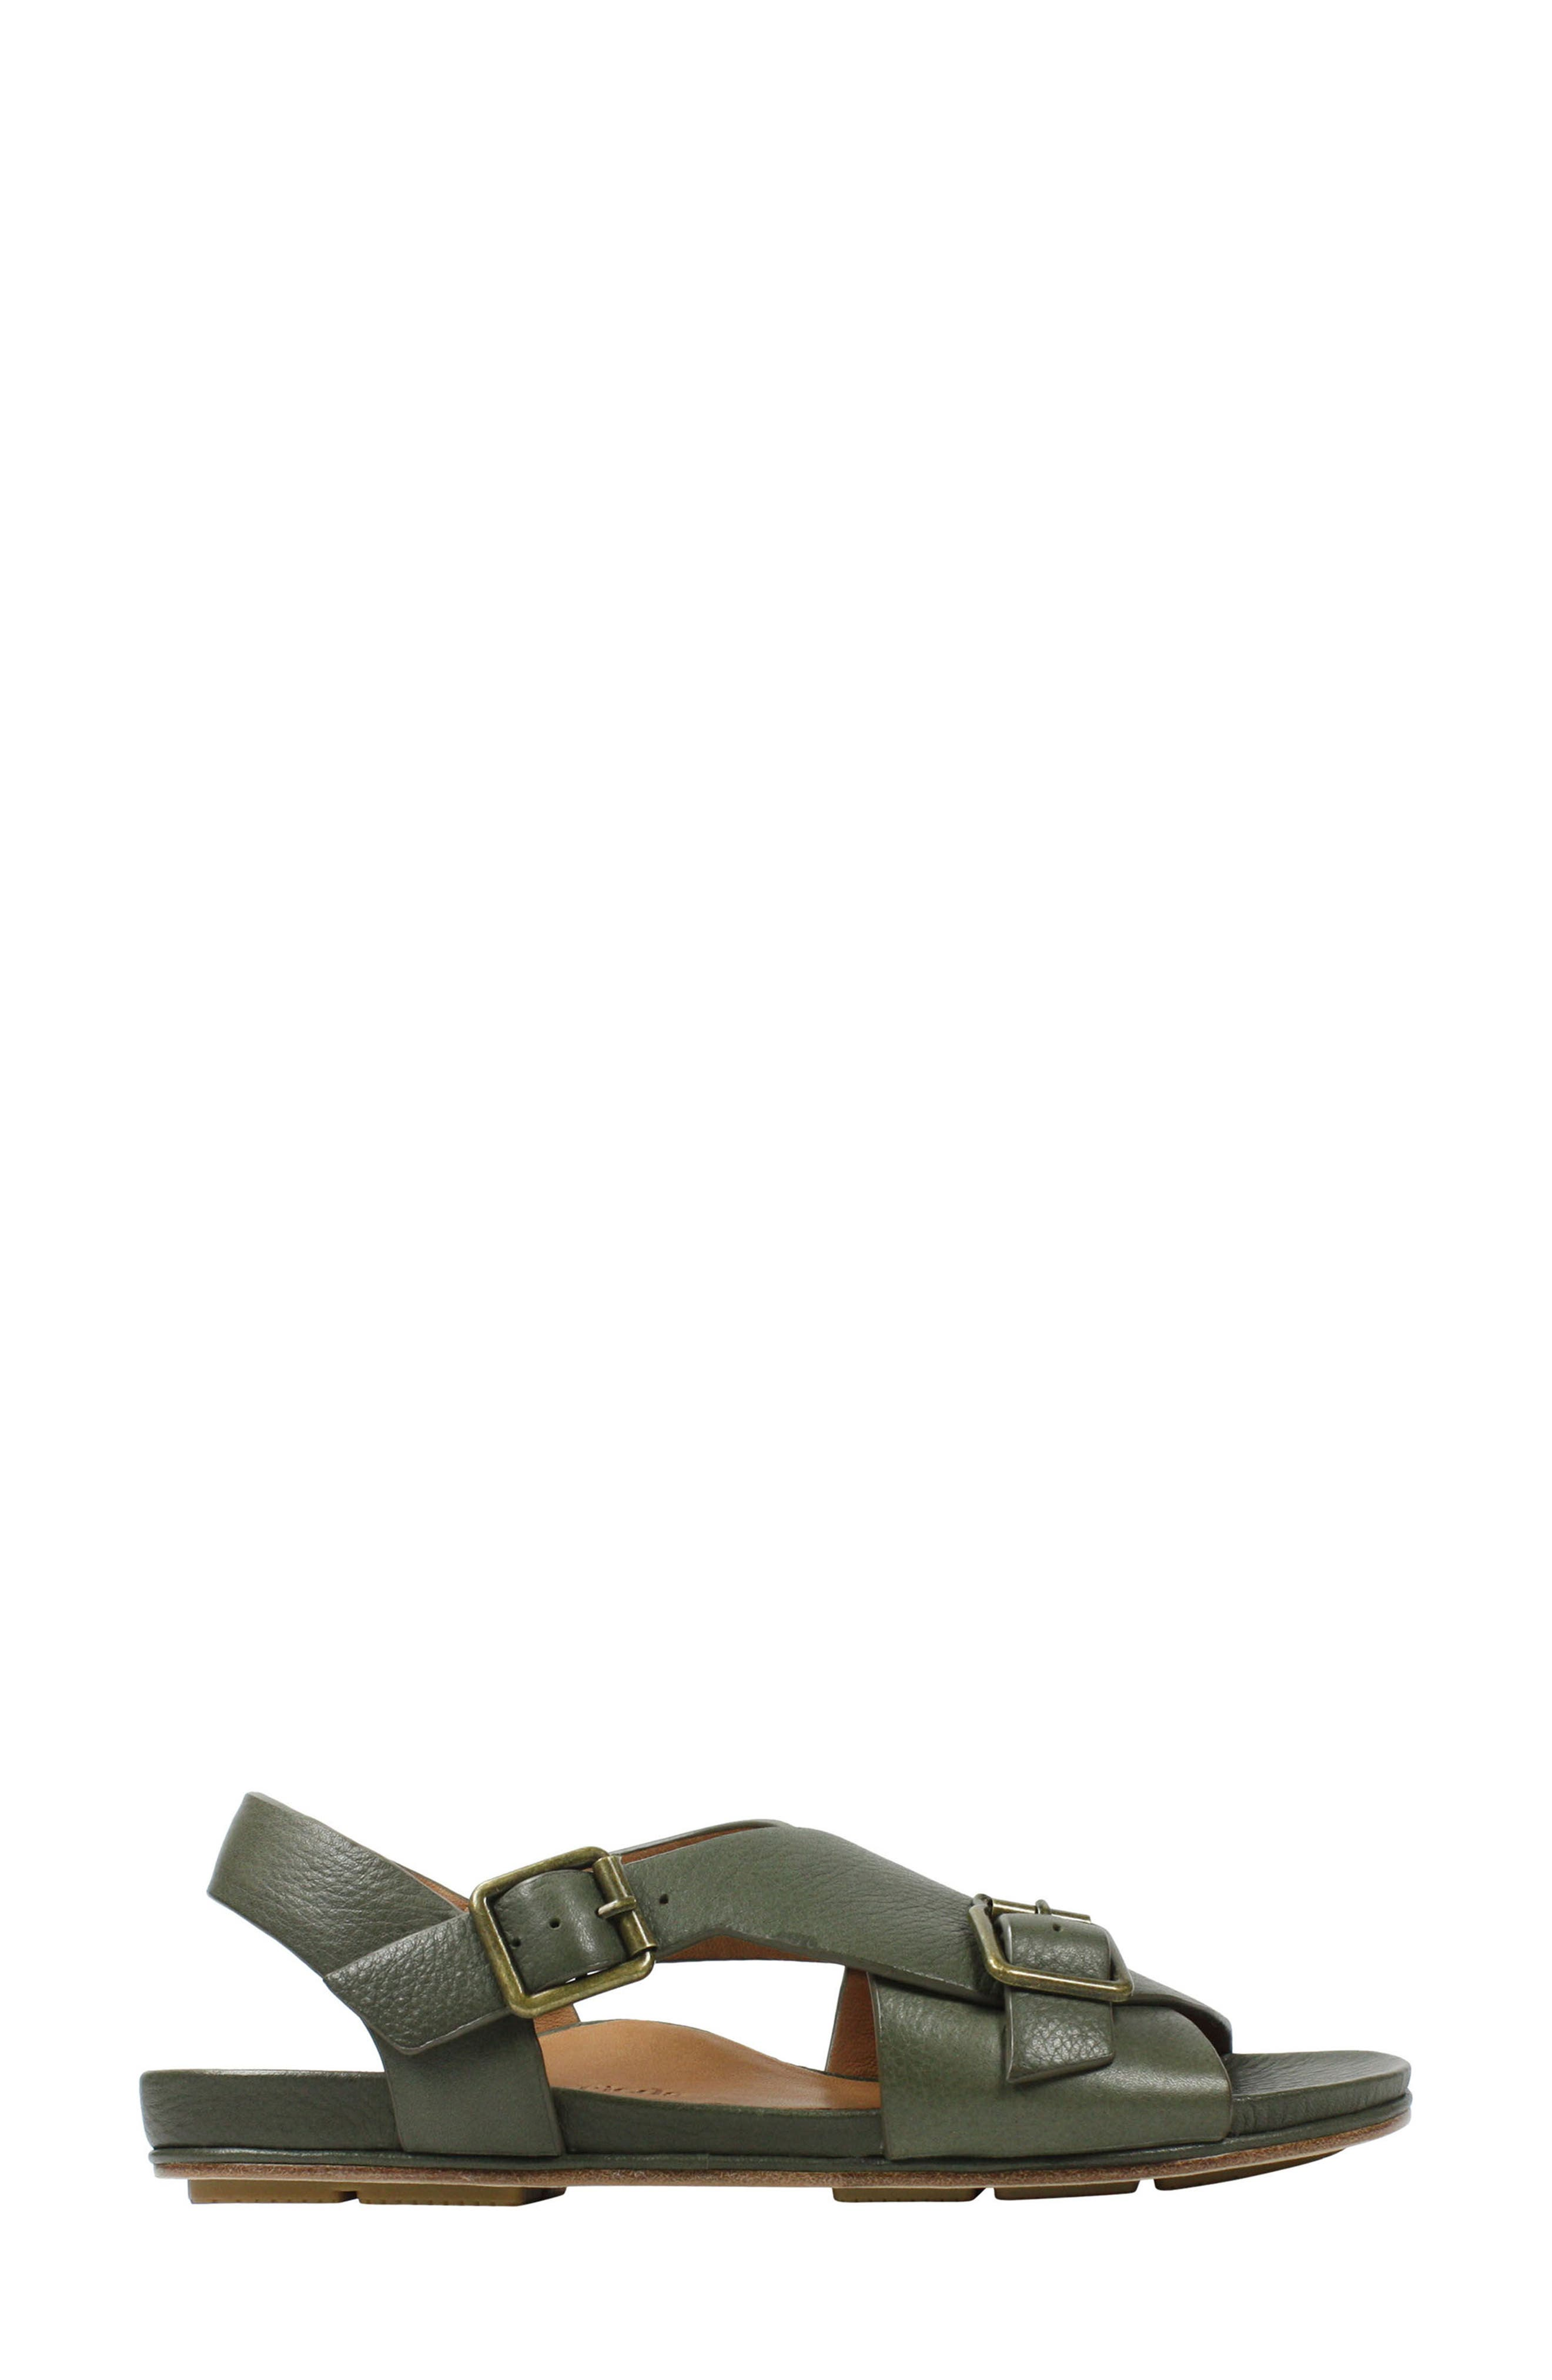 Dordogne Sandal,                             Alternate thumbnail 3, color,                             Olive Leather